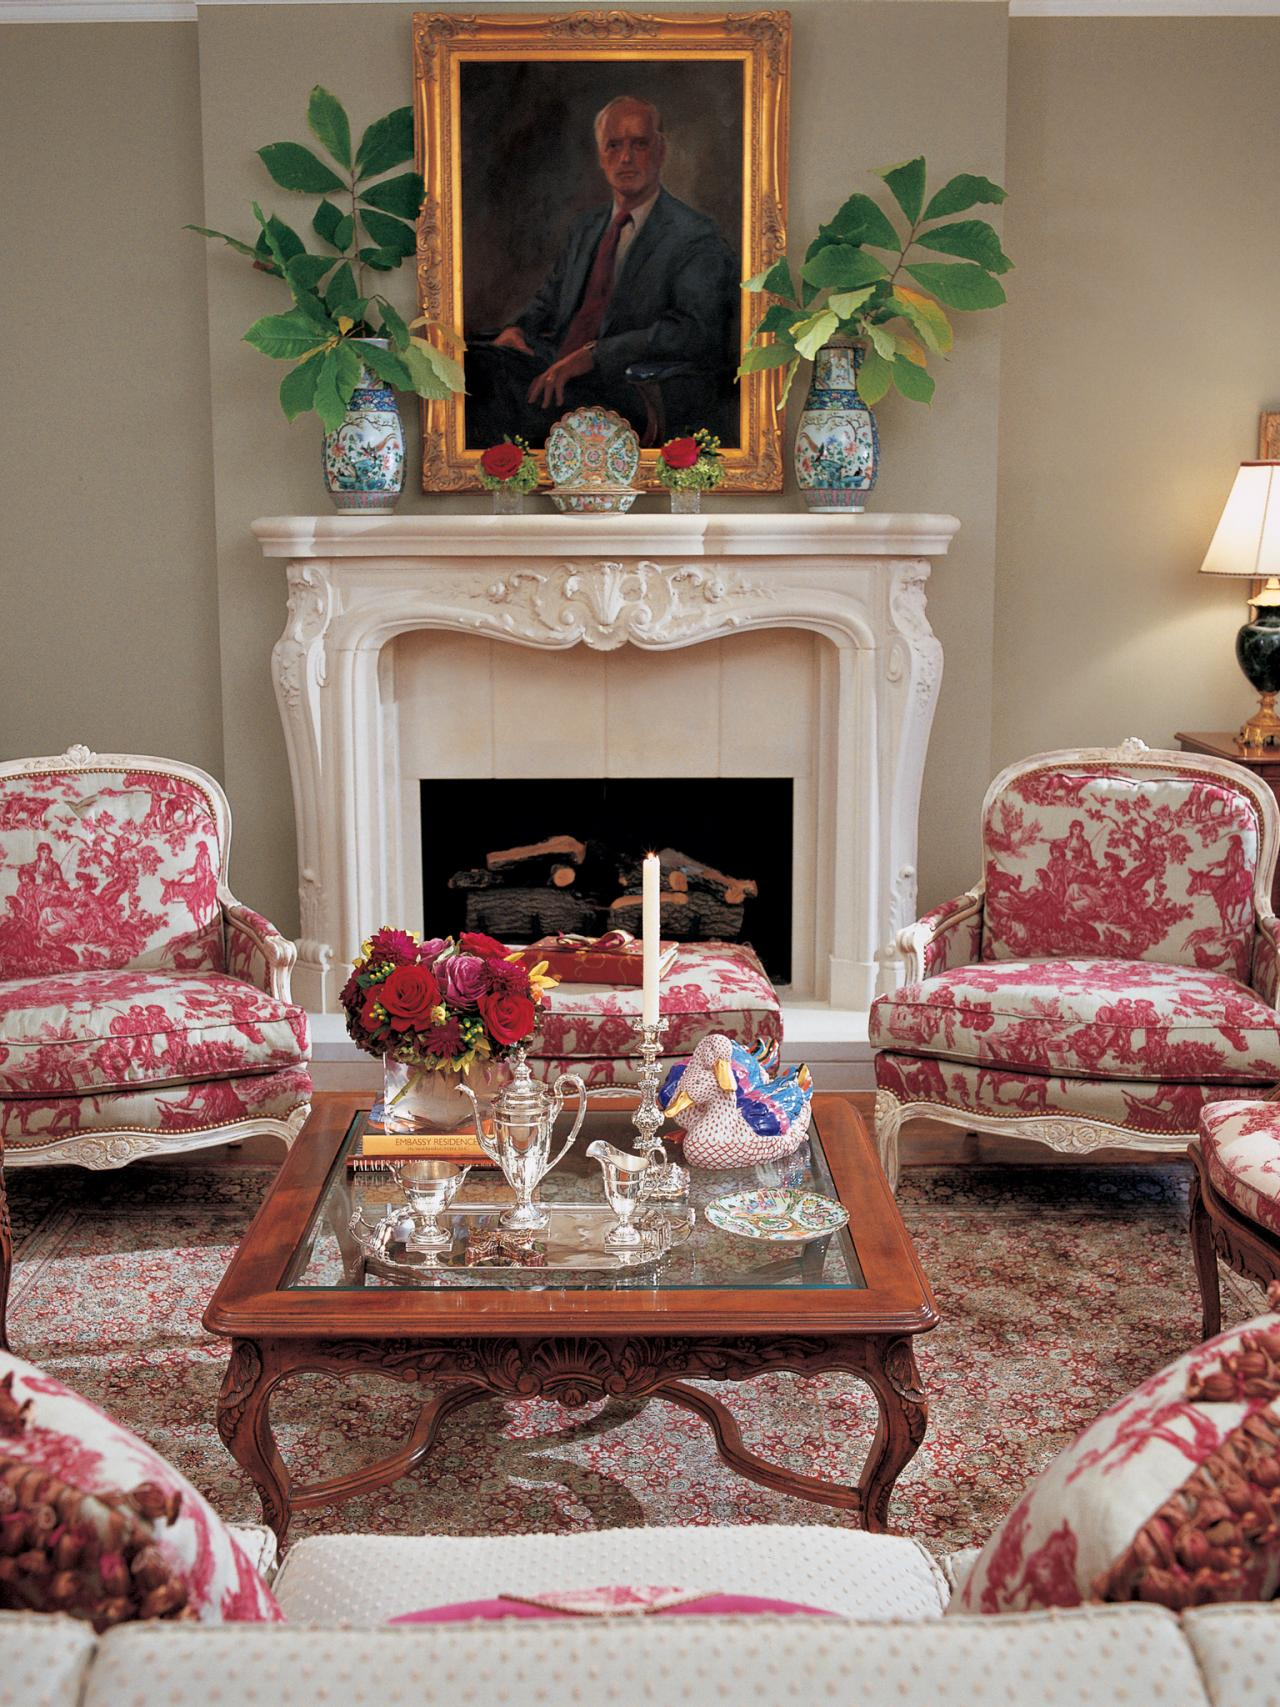 Living room with limestone mantel and red toile chairs hgtv - Pictures of decorated living rooms ...